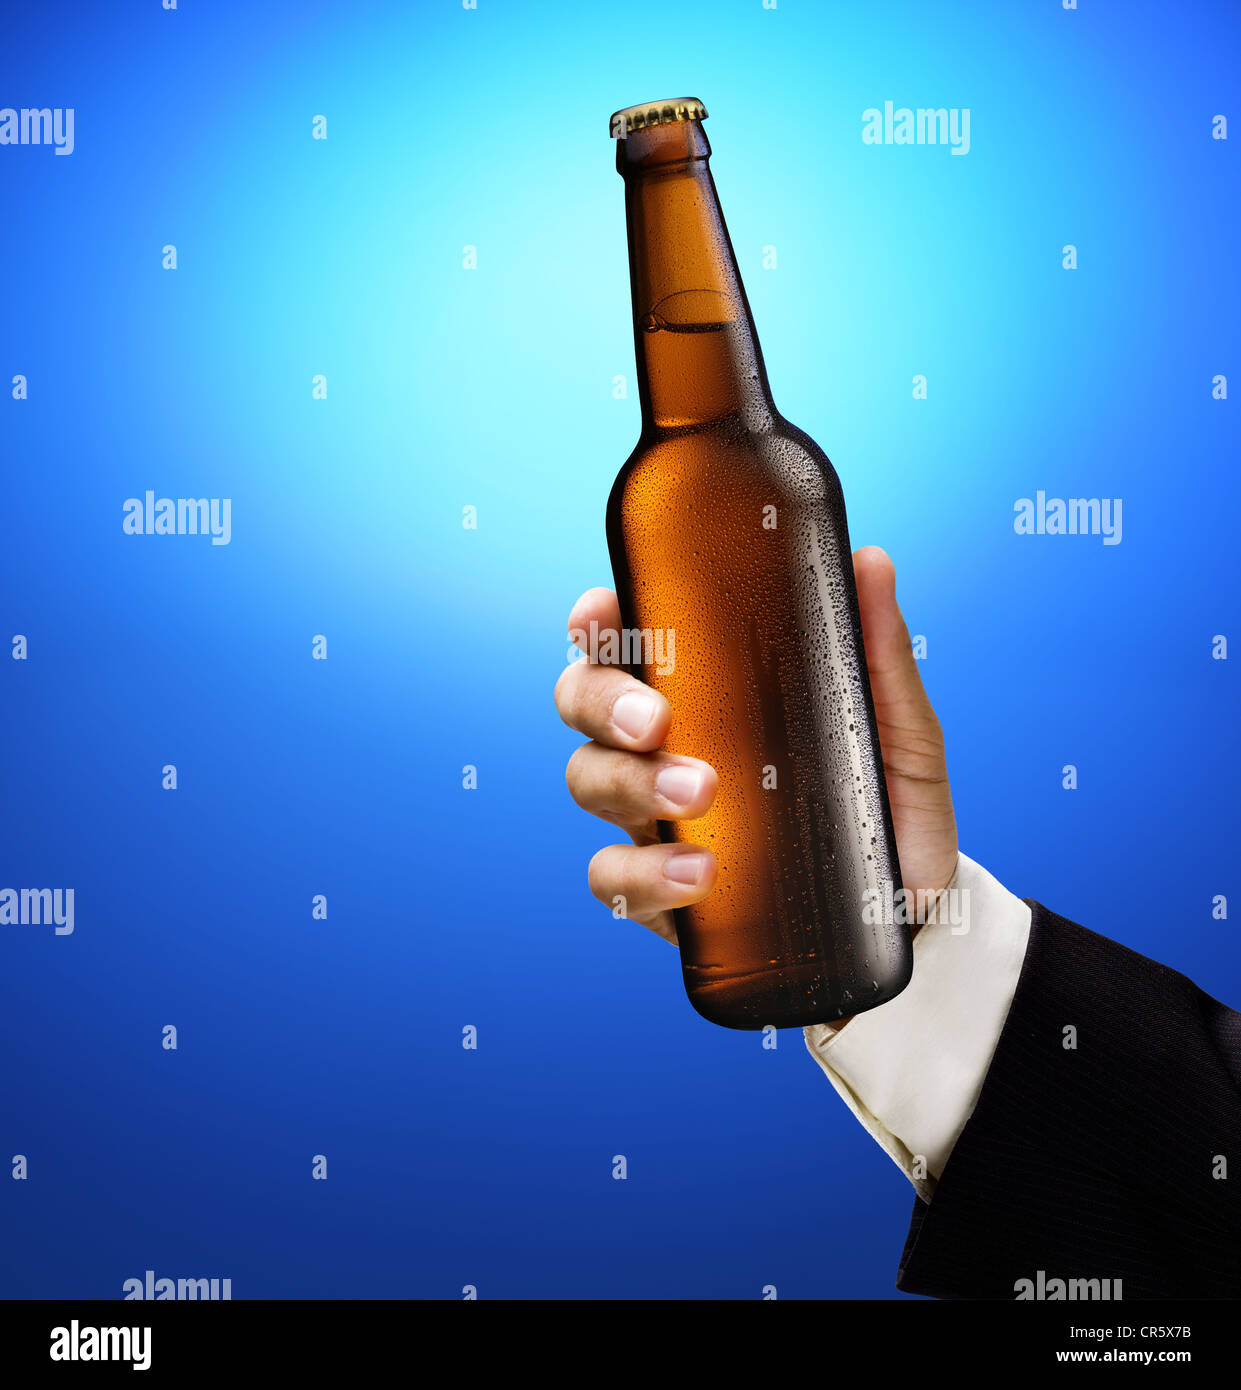 Bottle of beer in a man's hand on a blue background. Stock Photo